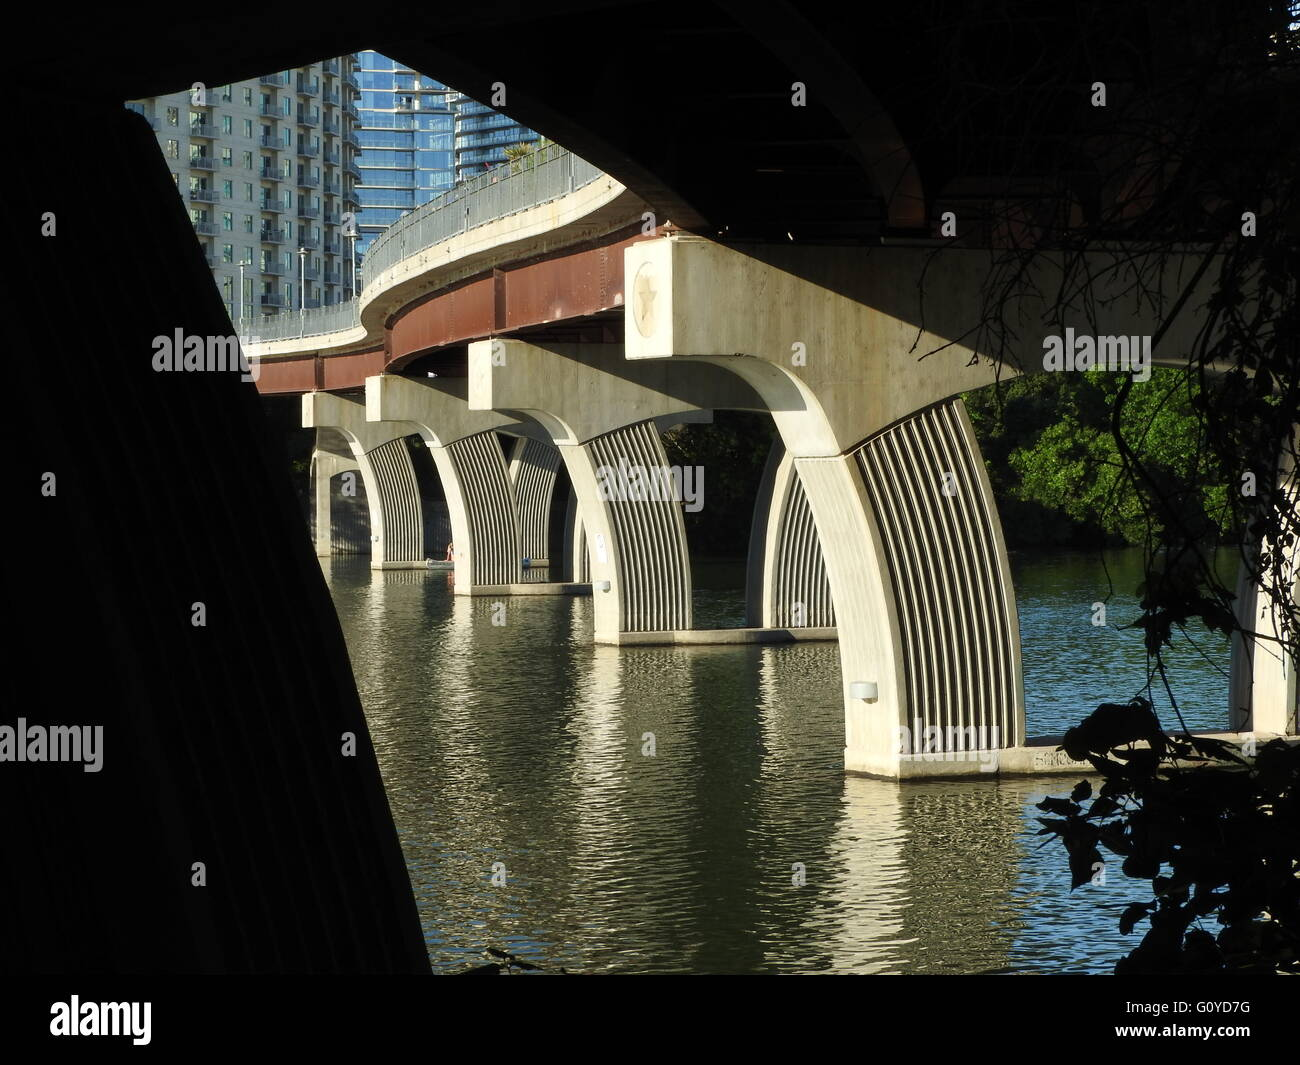 This bridge provides pleasant repetition and curves. - Stock Image